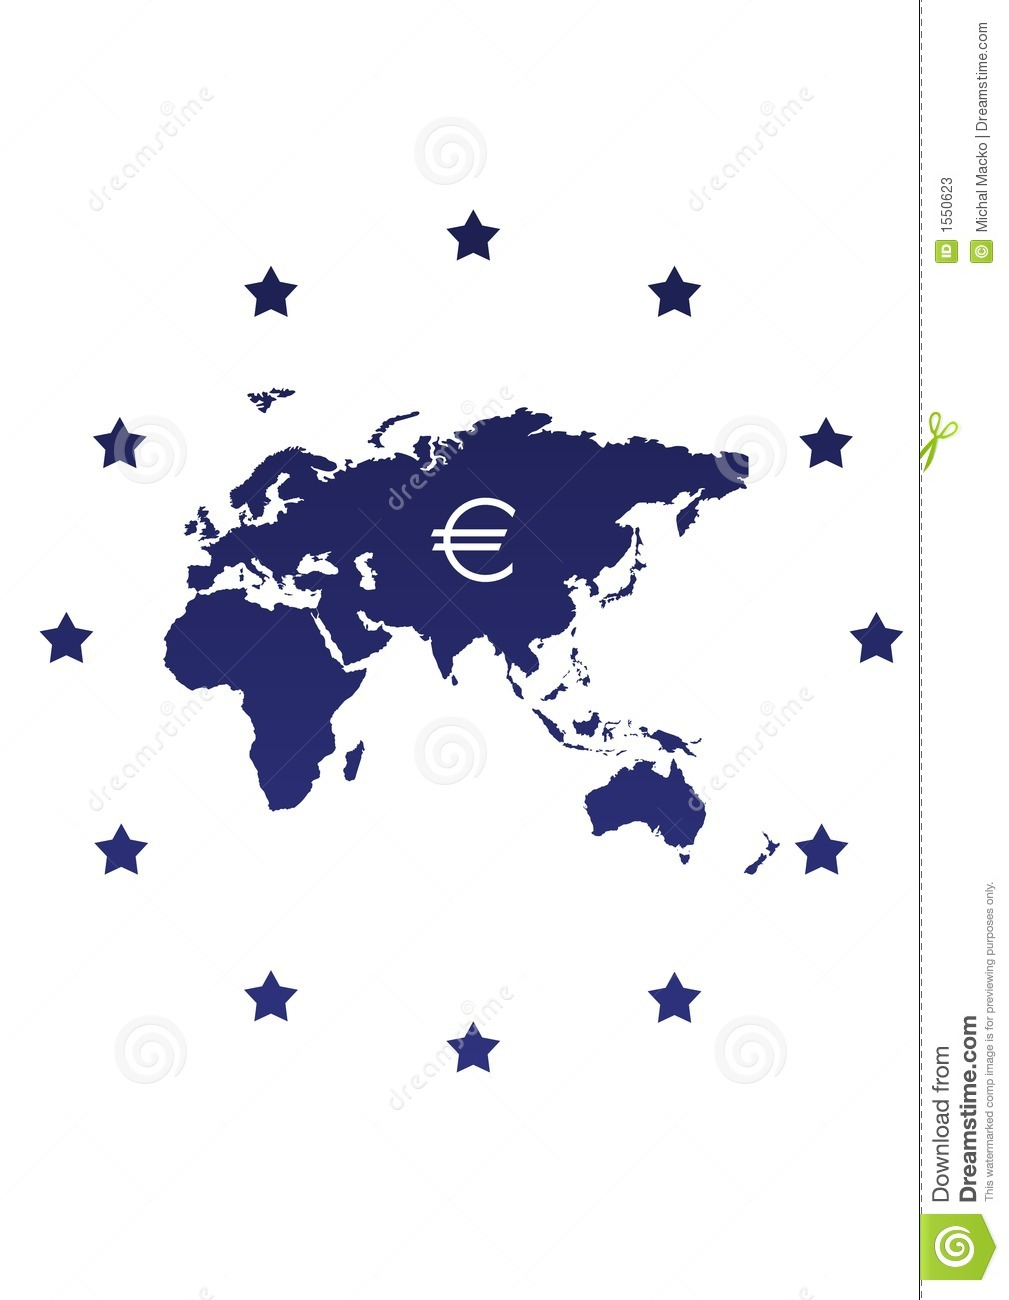 expansions of the european union Eu integration is trying to achieve more political integration and accommodation   integration and expansion processes that were slower and.